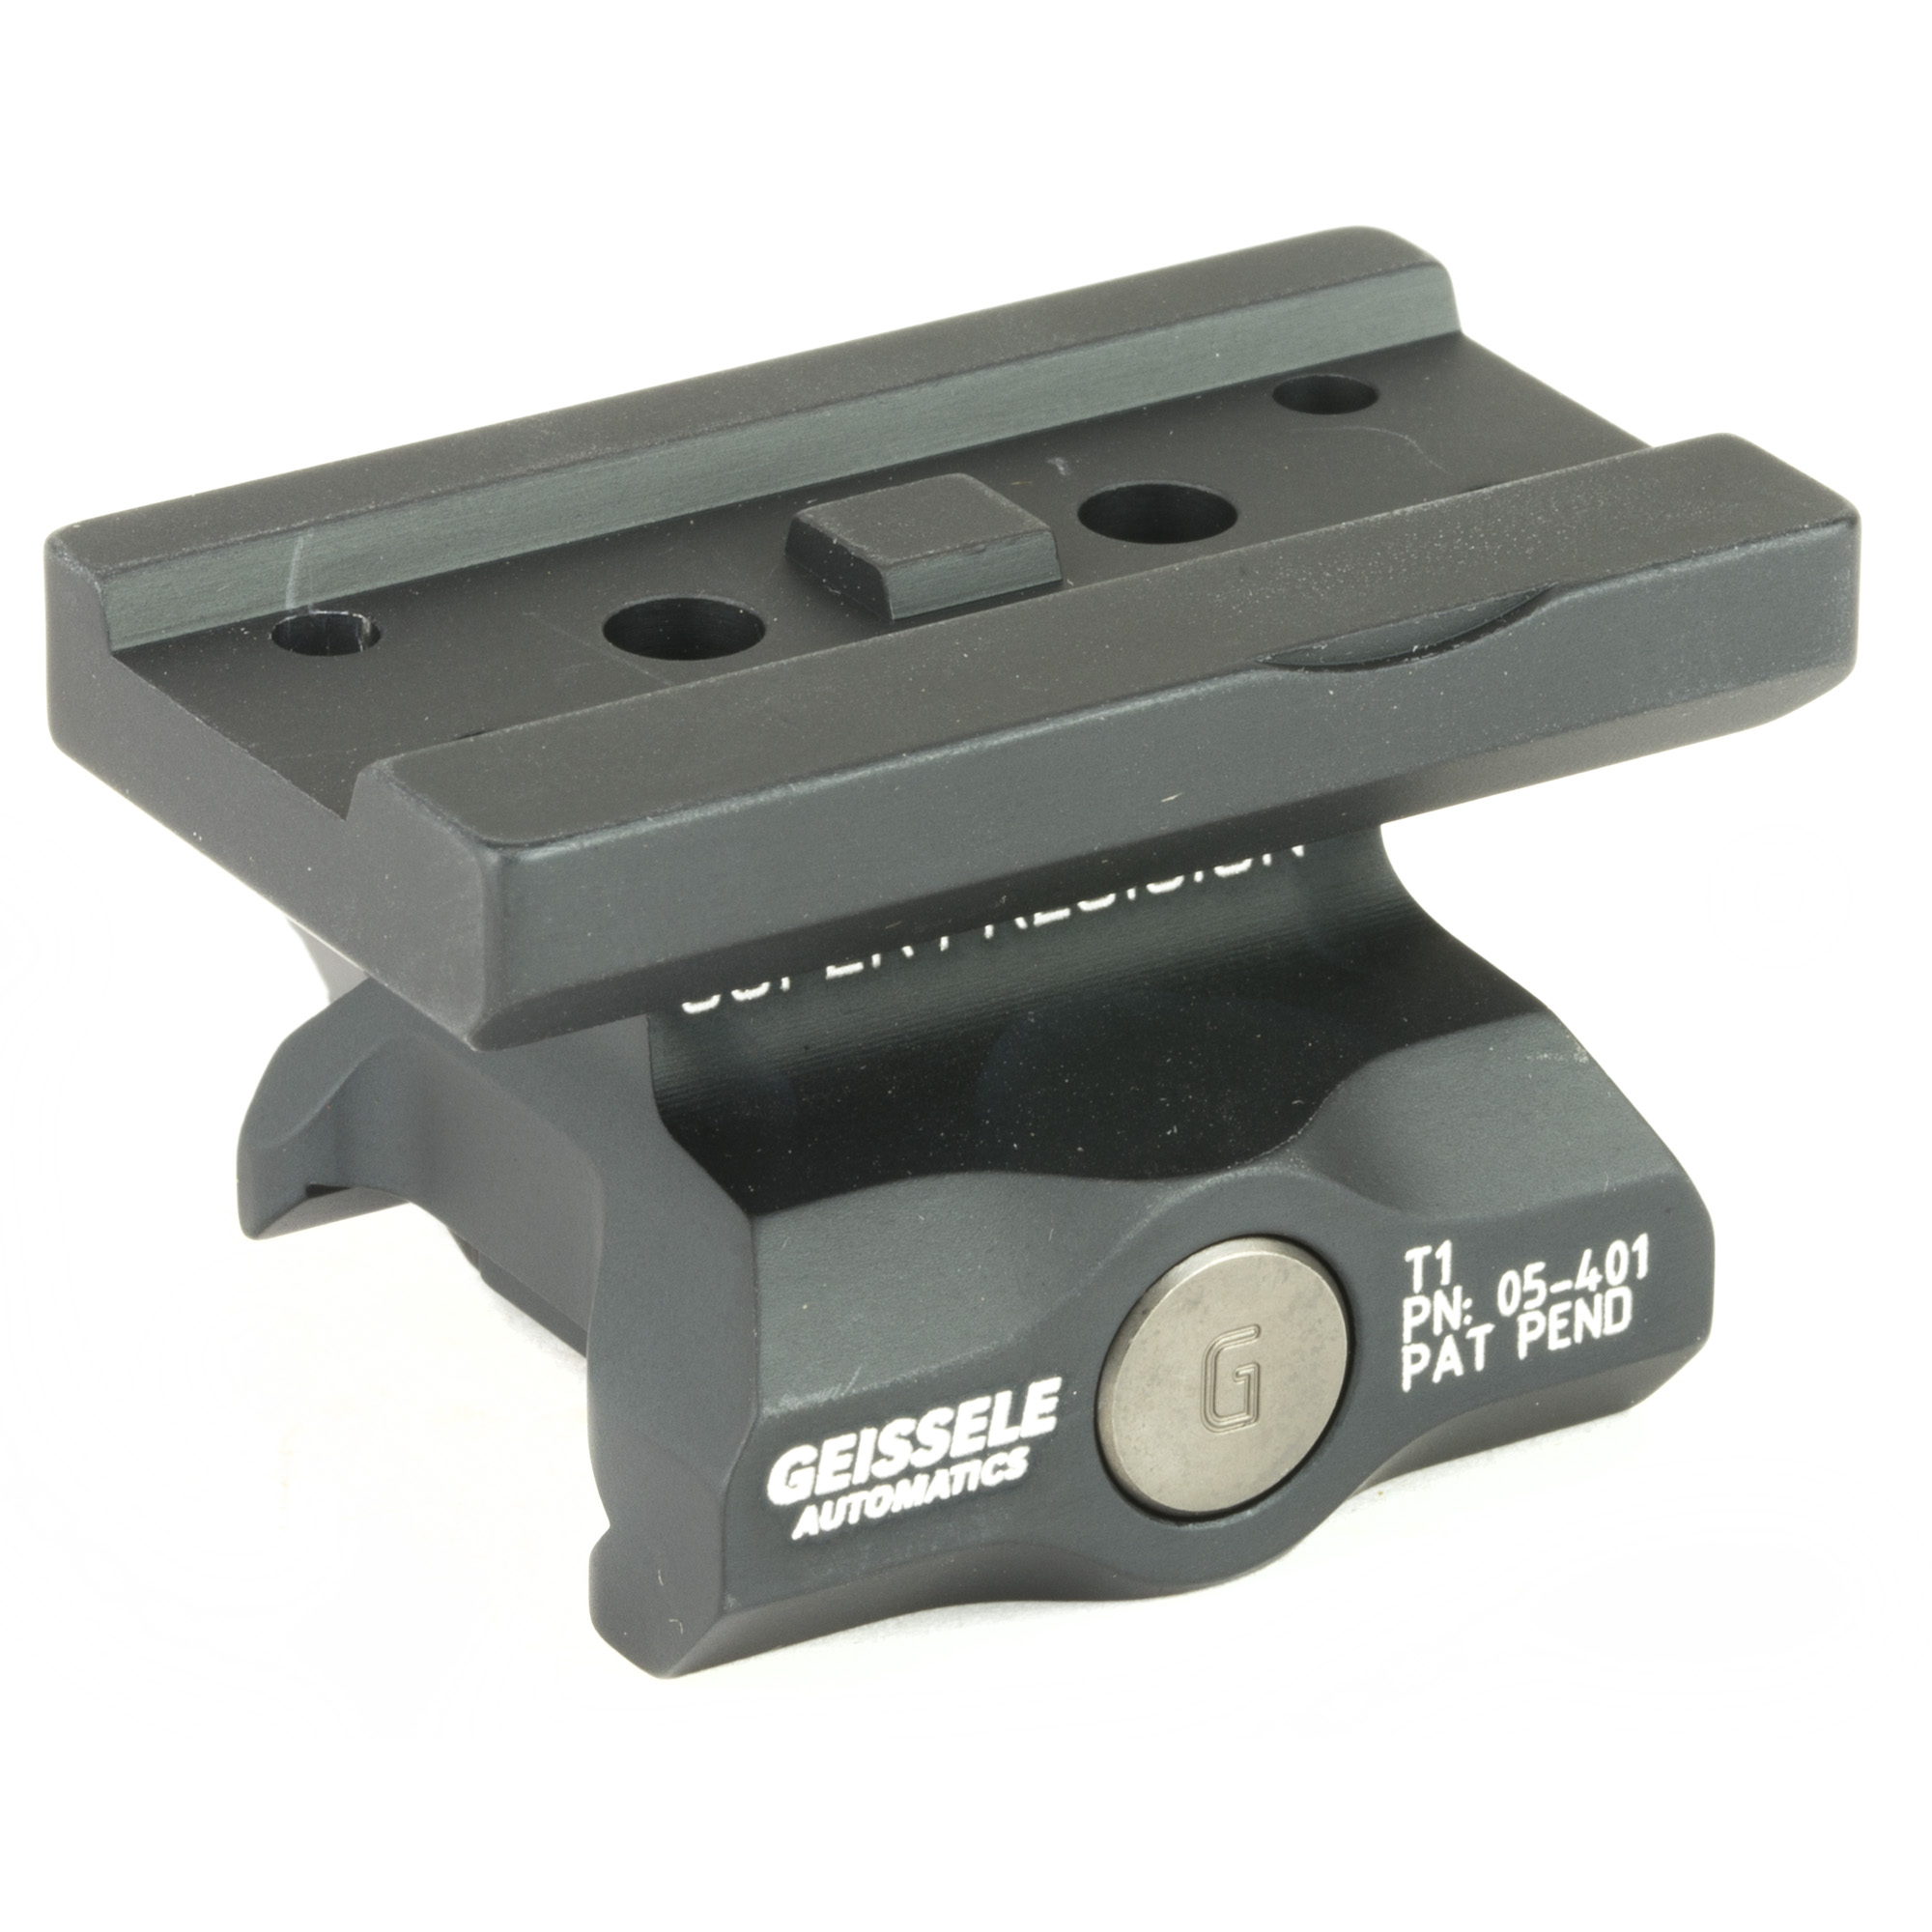 """The Super Precision T1 Series was developed specifically to work with the Aimpoint T1 and similarly mounted red dot optics. These mounts are precision machined from a single piece of 7075-T6 high strength aluminum. Utilizing Geissele's update of the classic nut and bolt method"""" this mount will attach your red dot to your weapon with 1""""400 pounds of clamping force"""" and features 3 shear lugs for maximum rigidity and return to zero."""